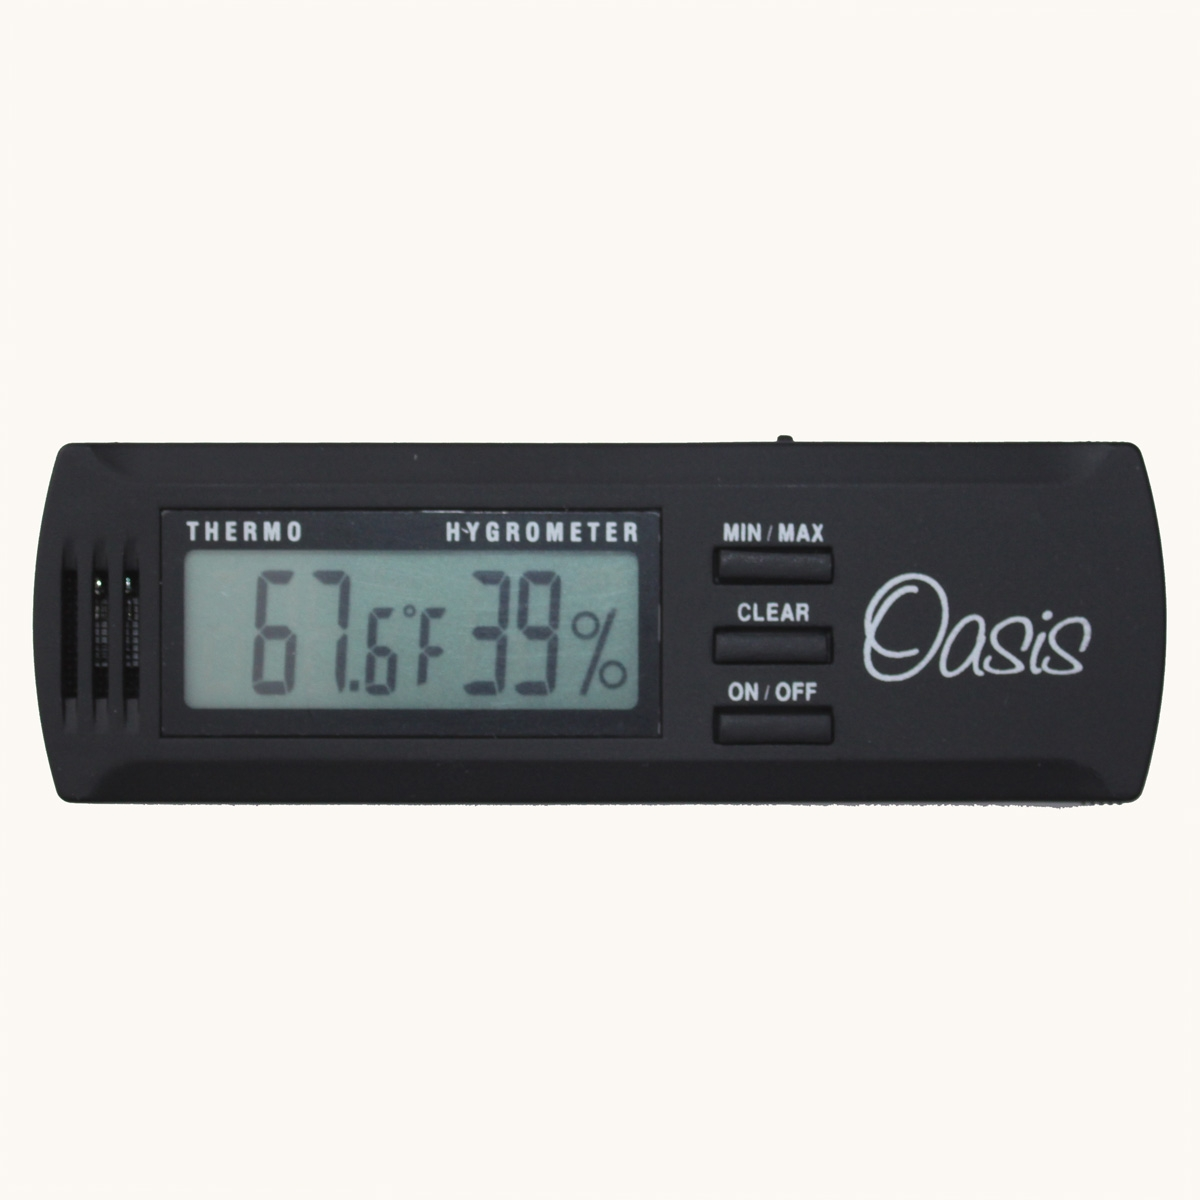 Oasis Digital Hygrometer And Thermometer